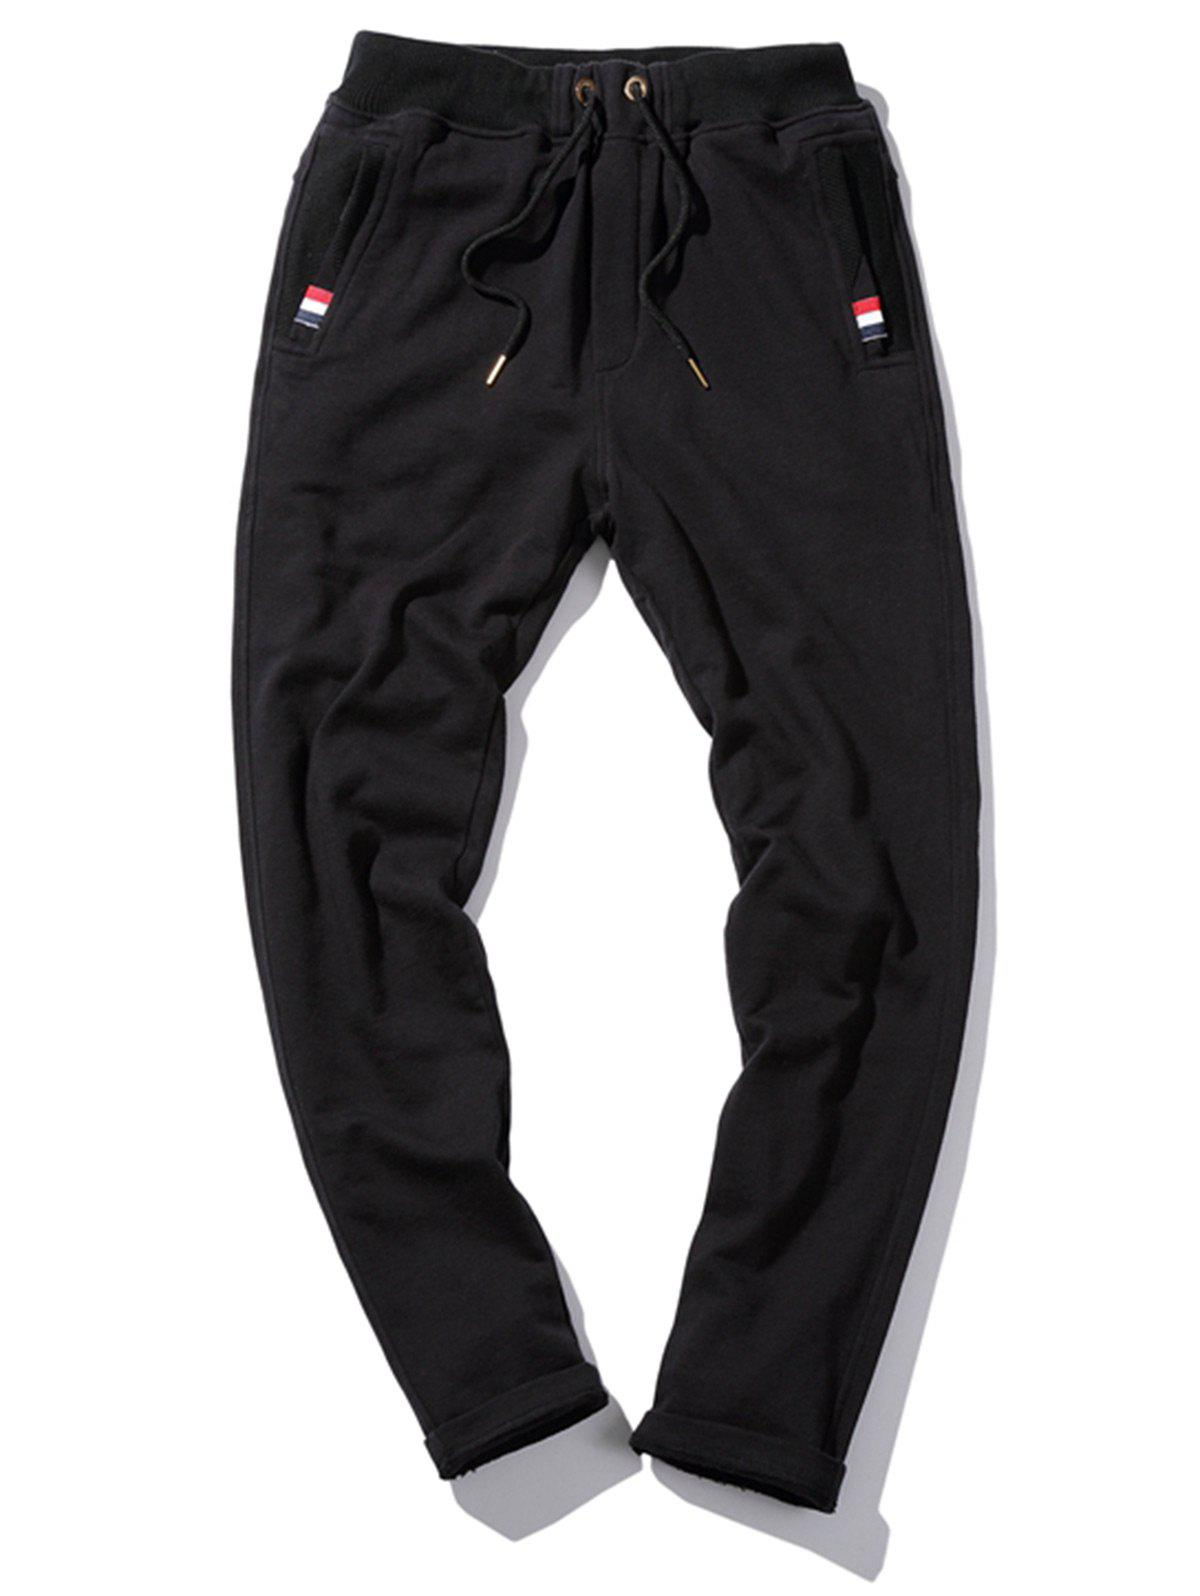 Drawstring Waist Stripe Detail Sweatpants - BLACK 4XL